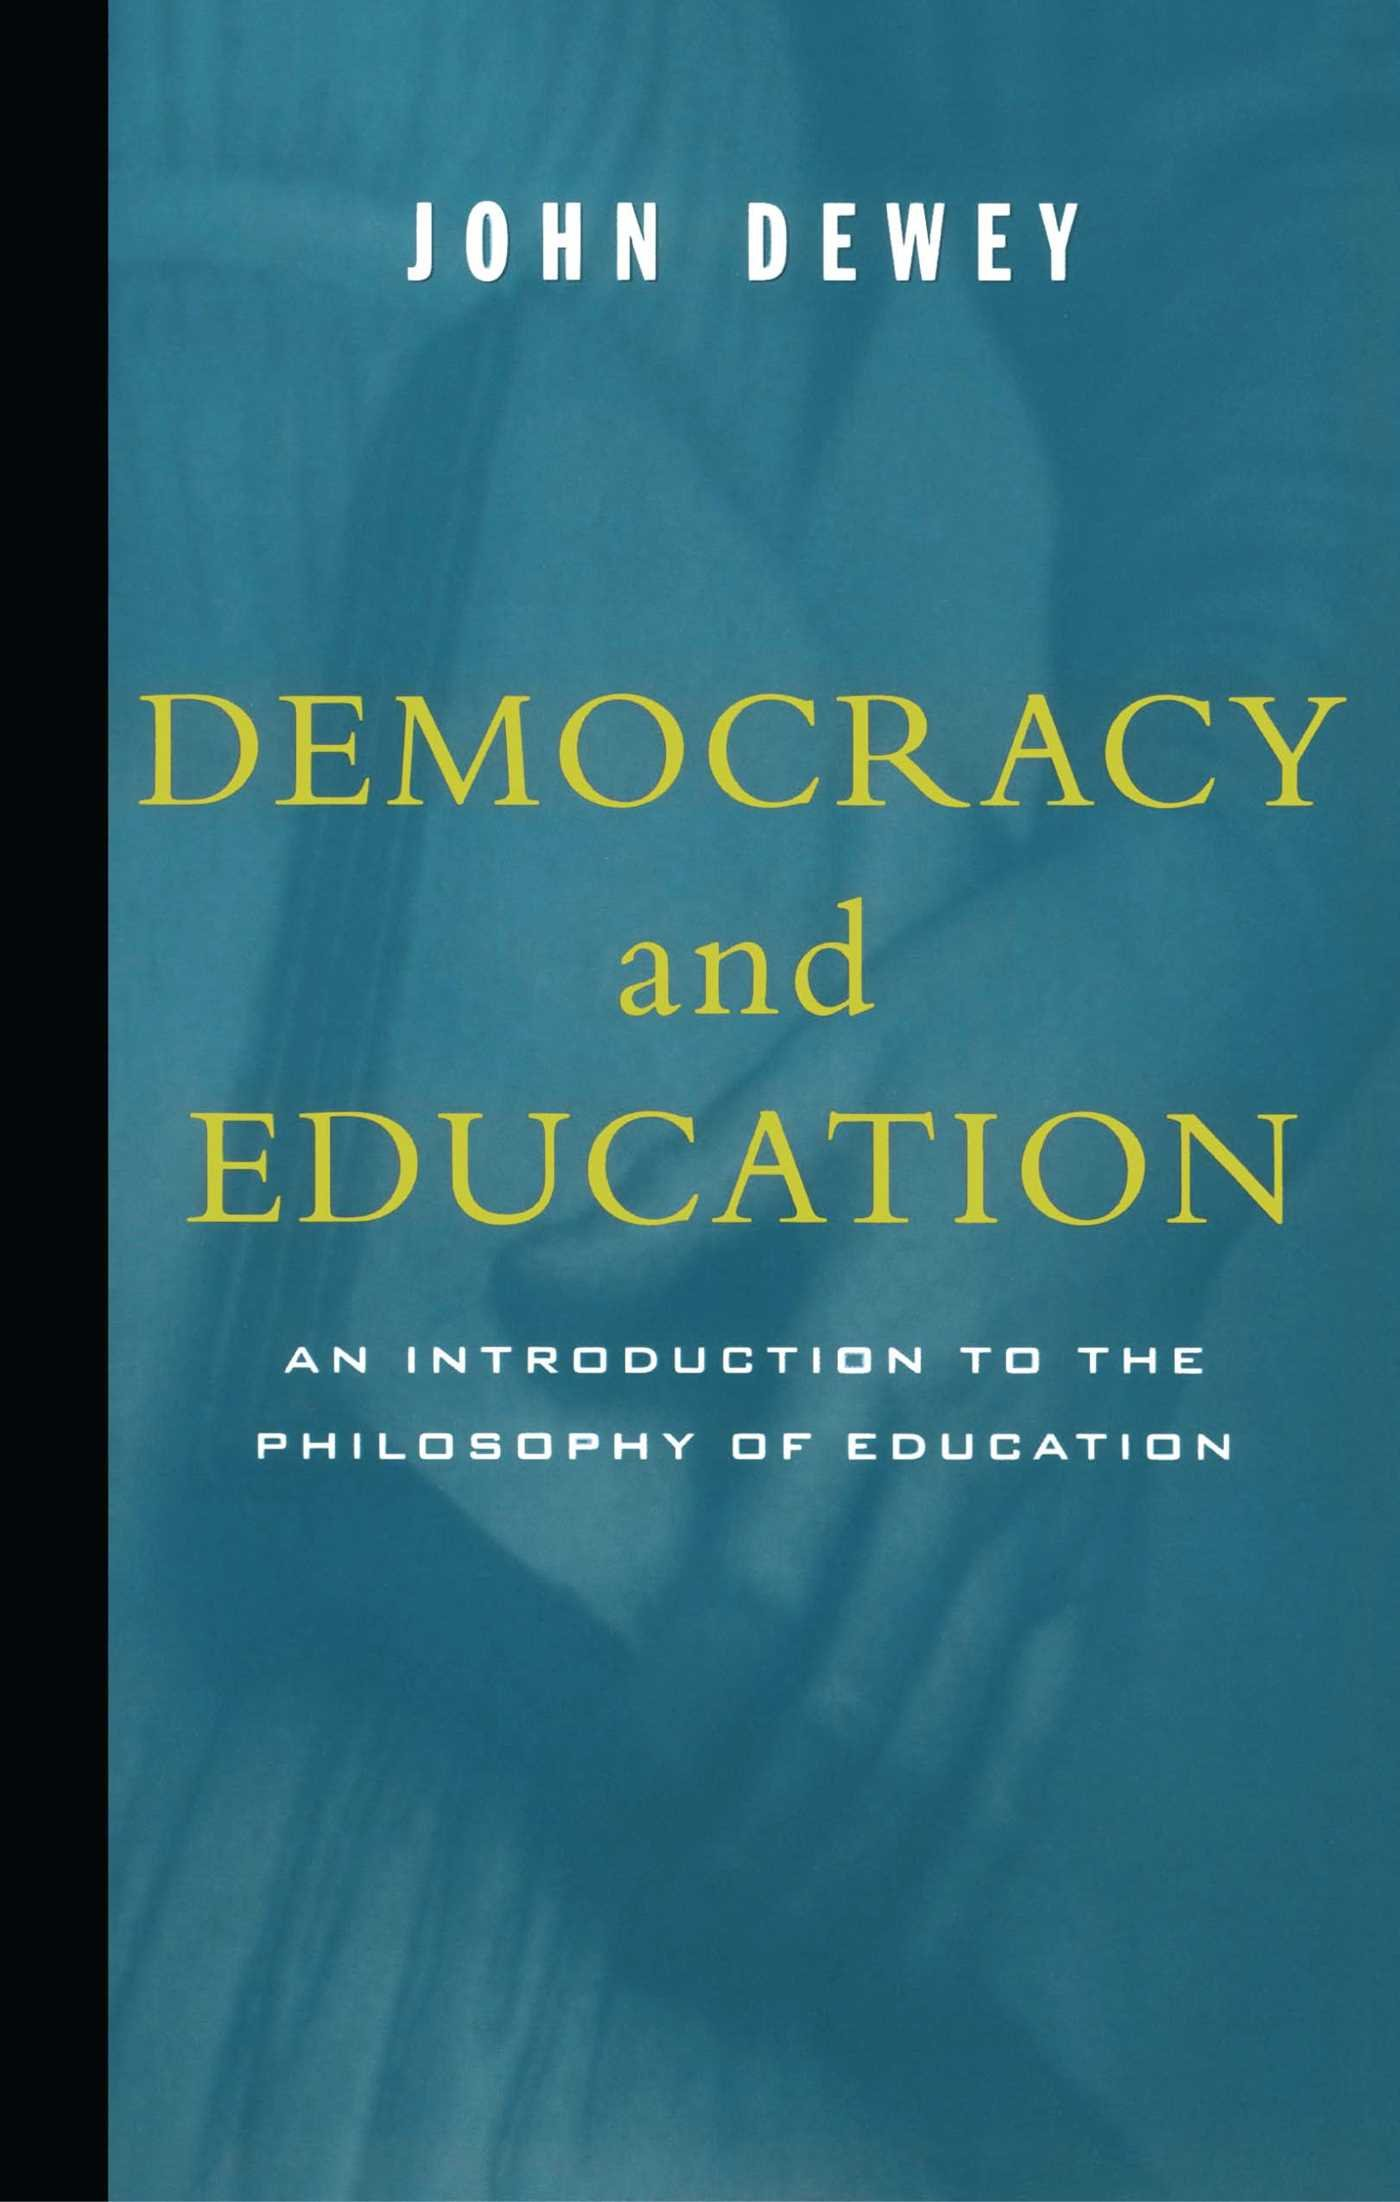 Democracy And Education: John Dewey: 9780684836317: Amazon.com: Books